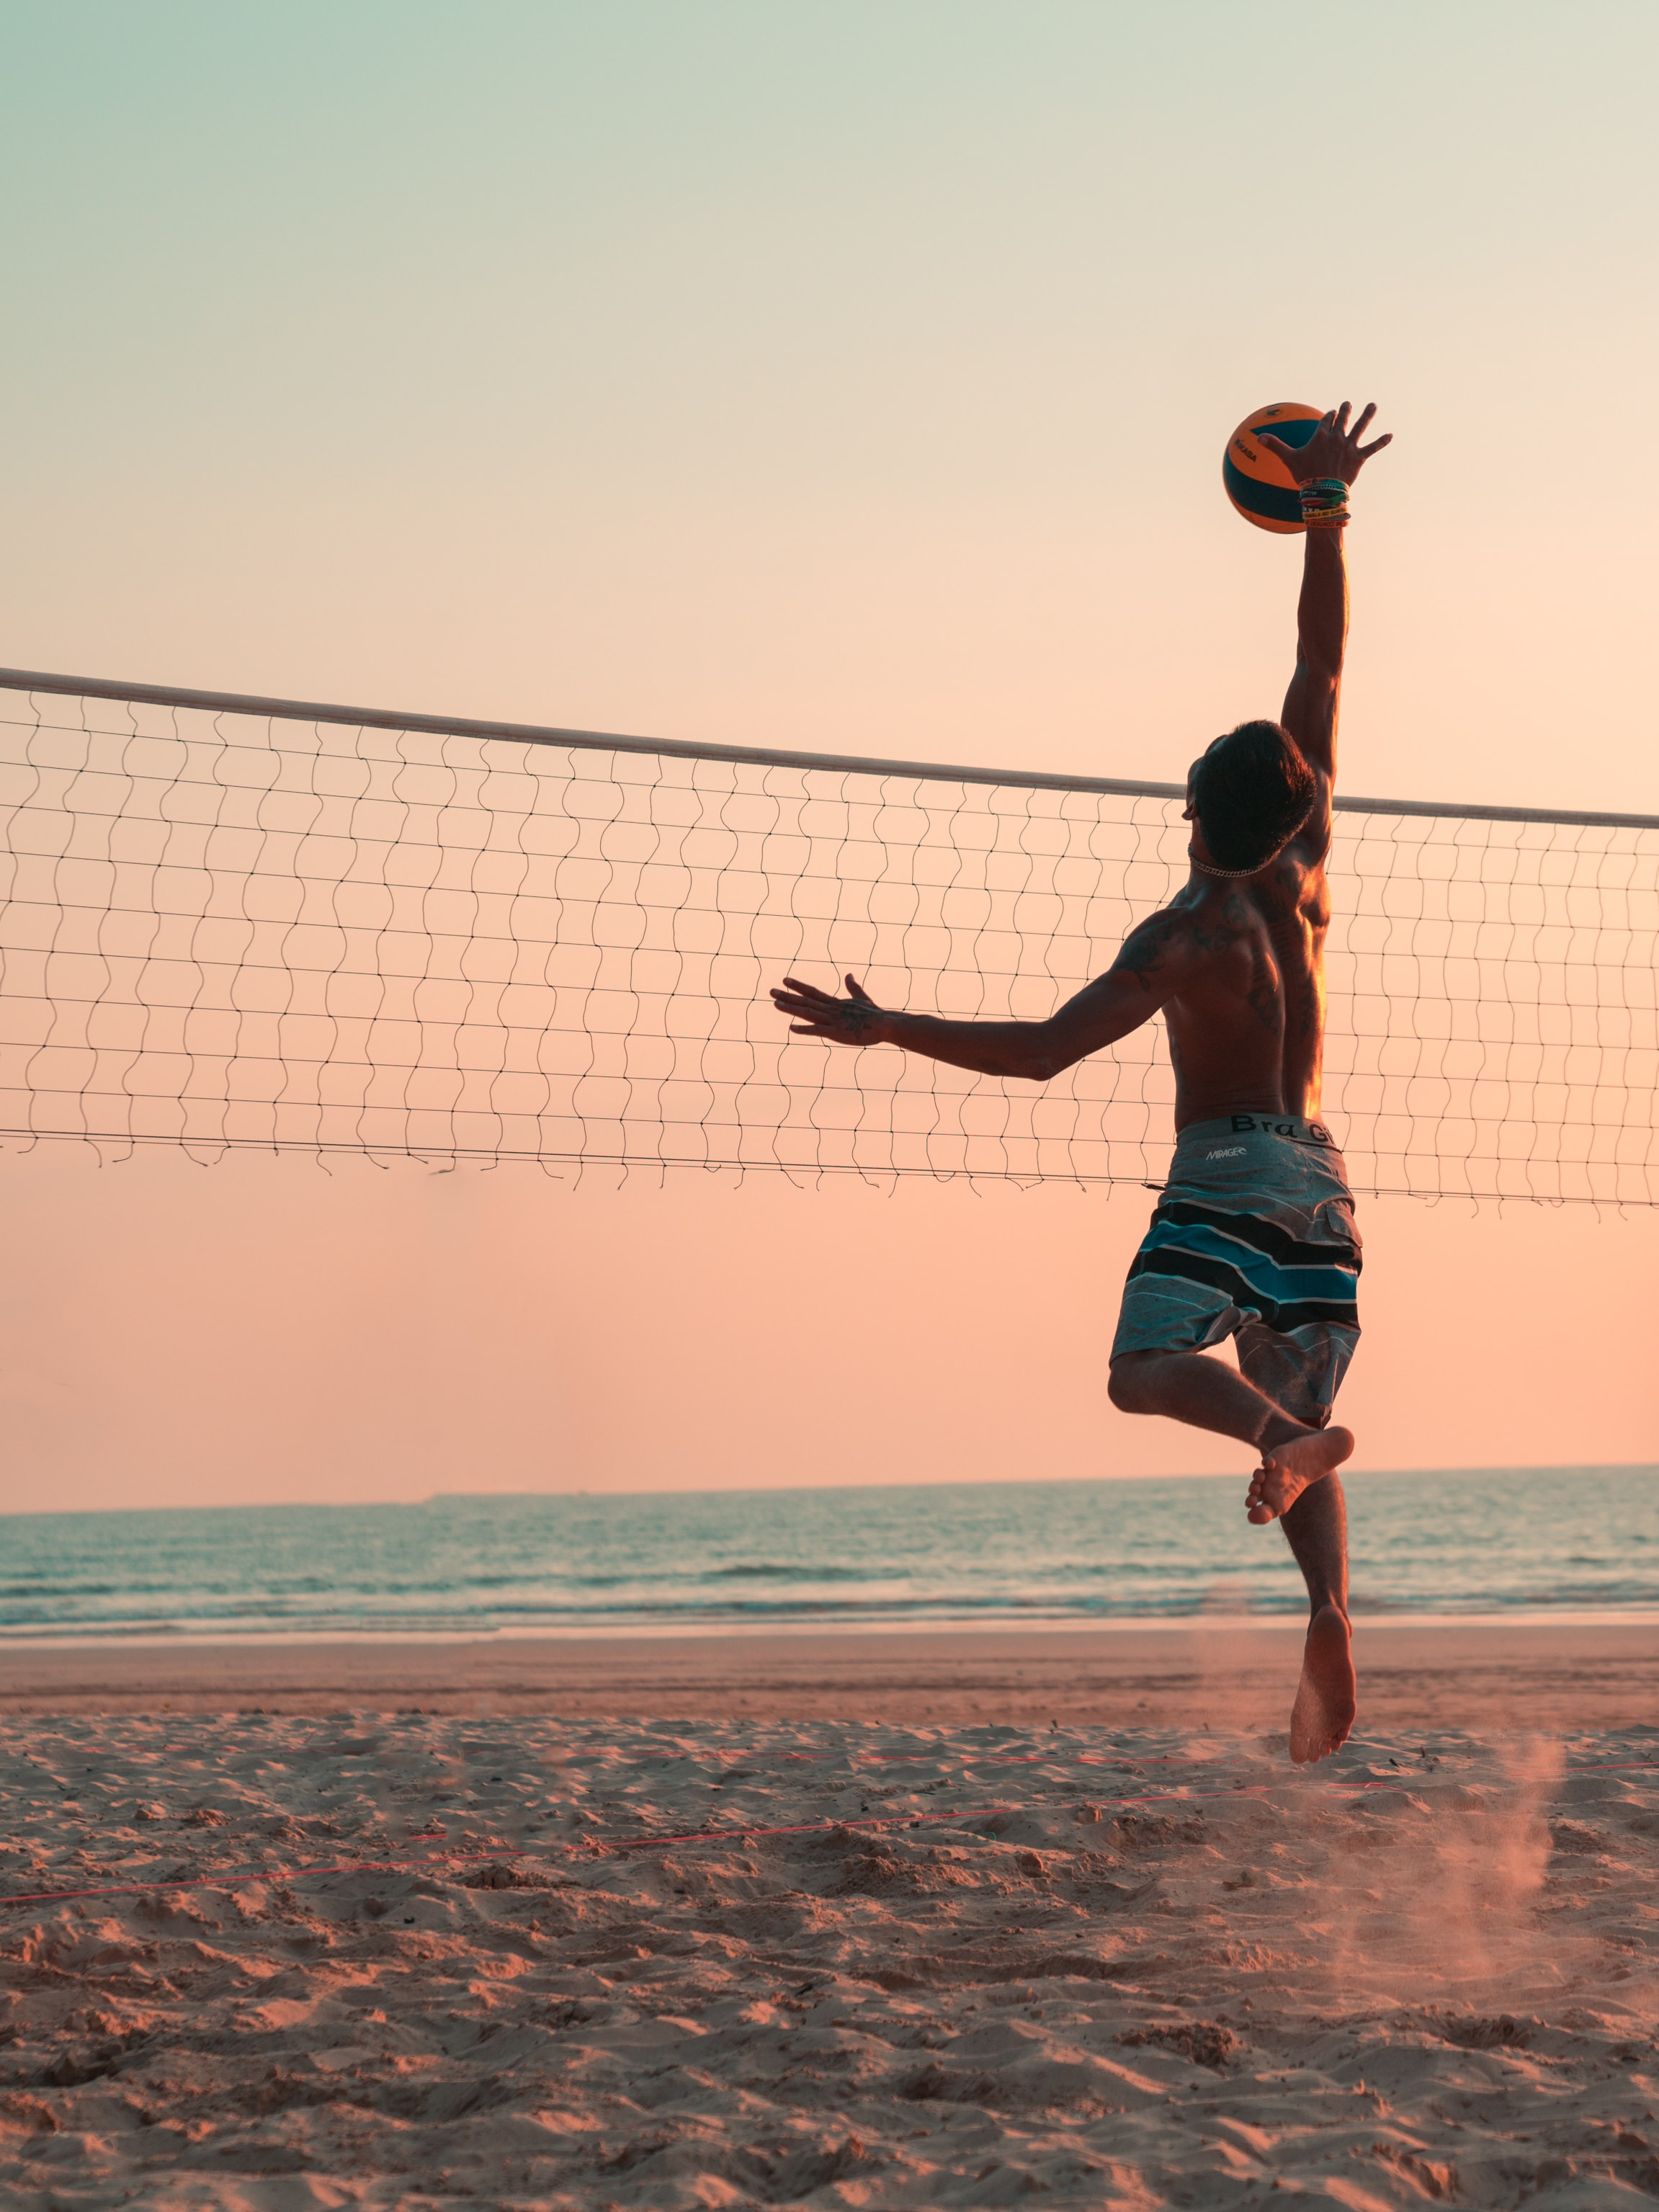 man playing beach volleyball during daytime